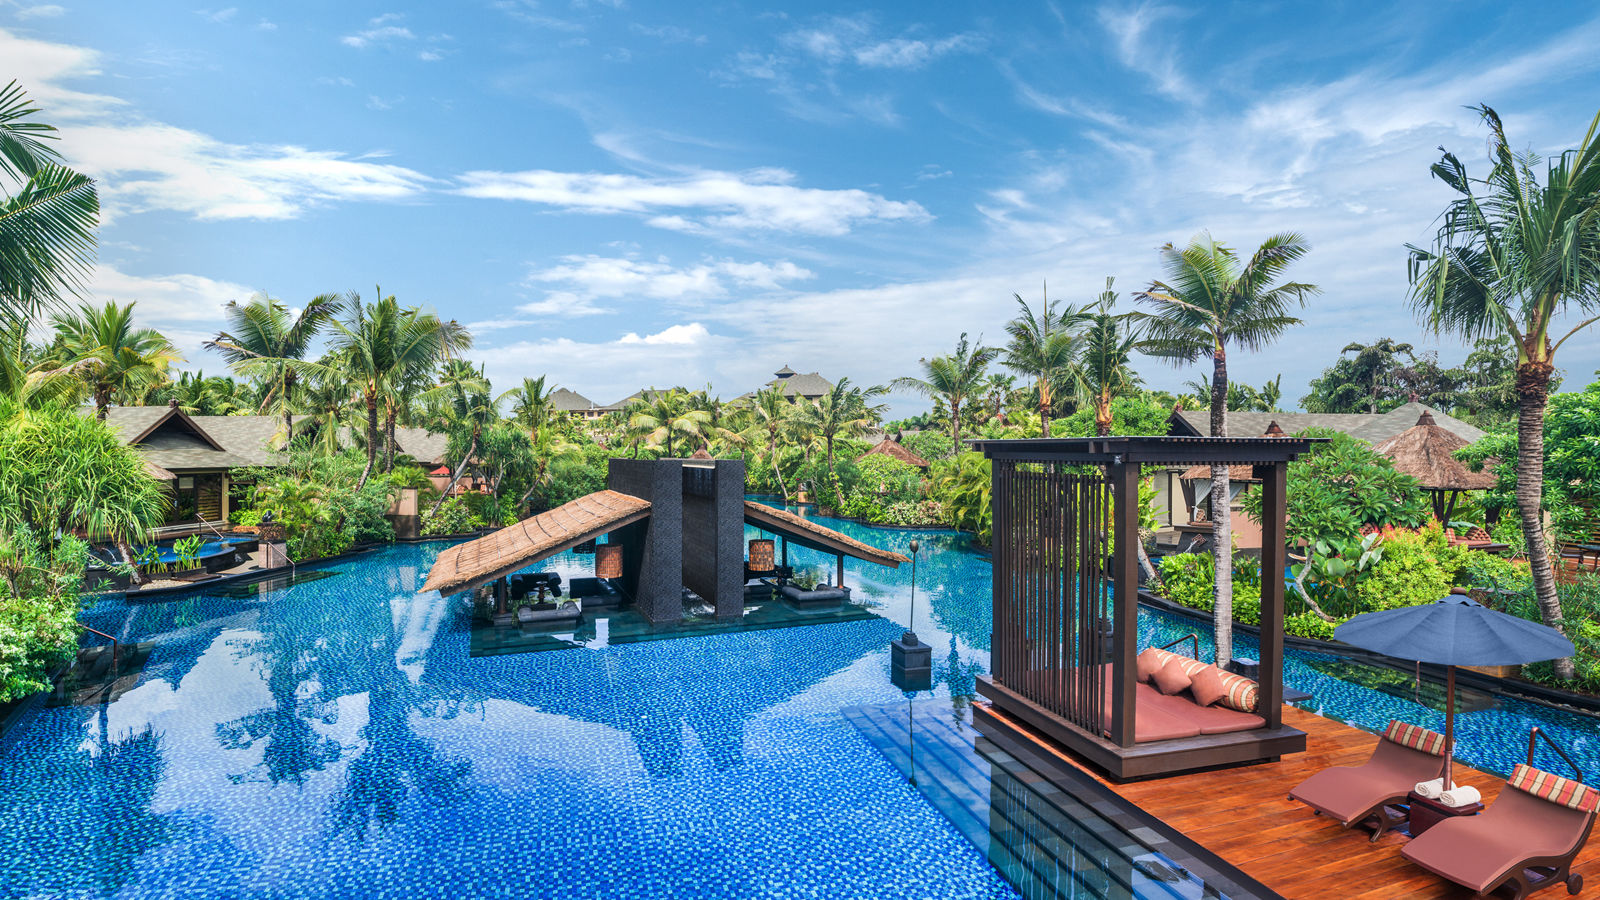 Salt Water Lagoon at The St. Regis Bali Resort